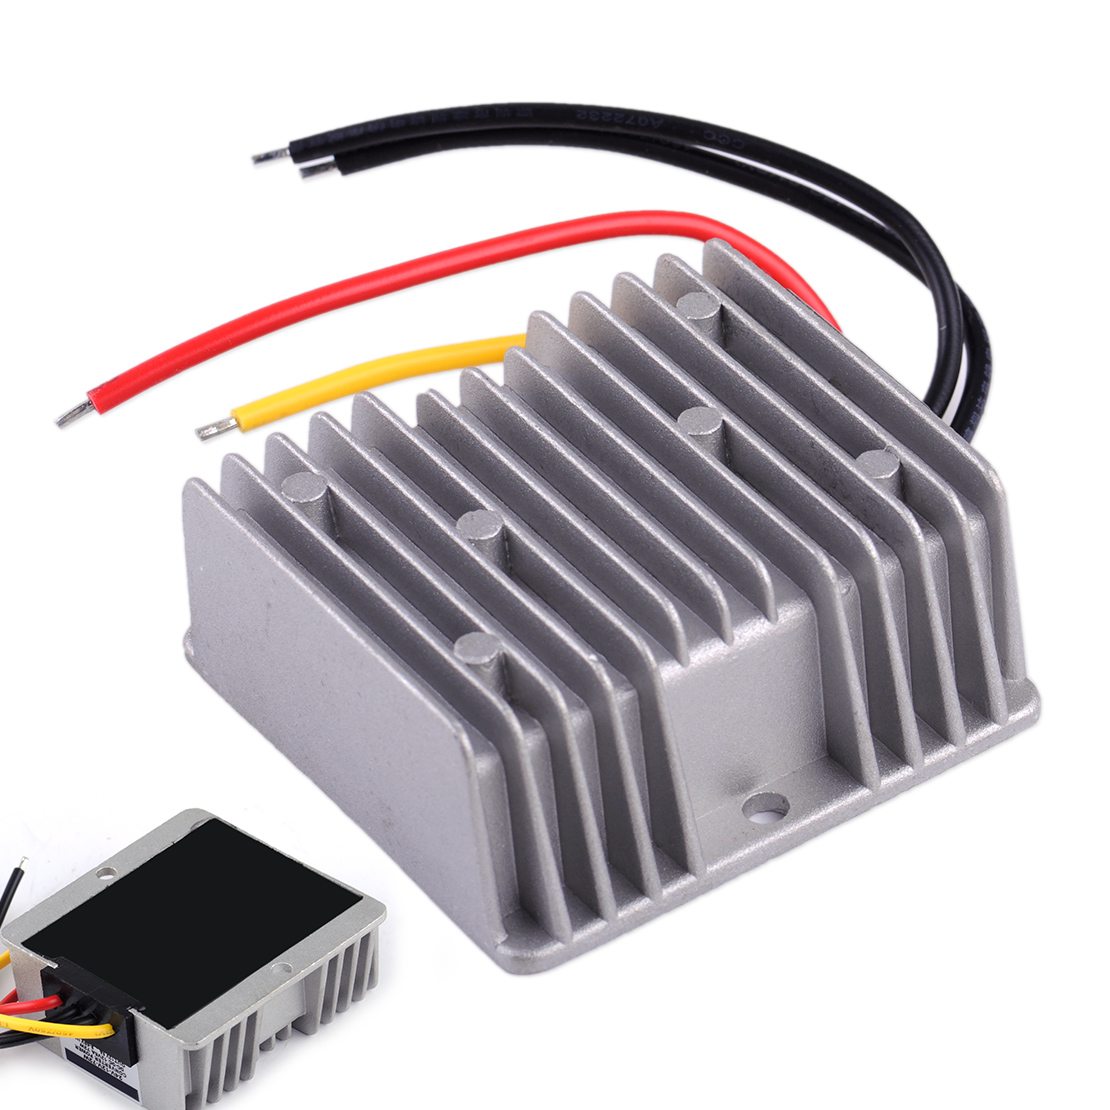 MINI ALIMENTATORE 12v Internet if things iot installazione a muro 240 V 12 Volt